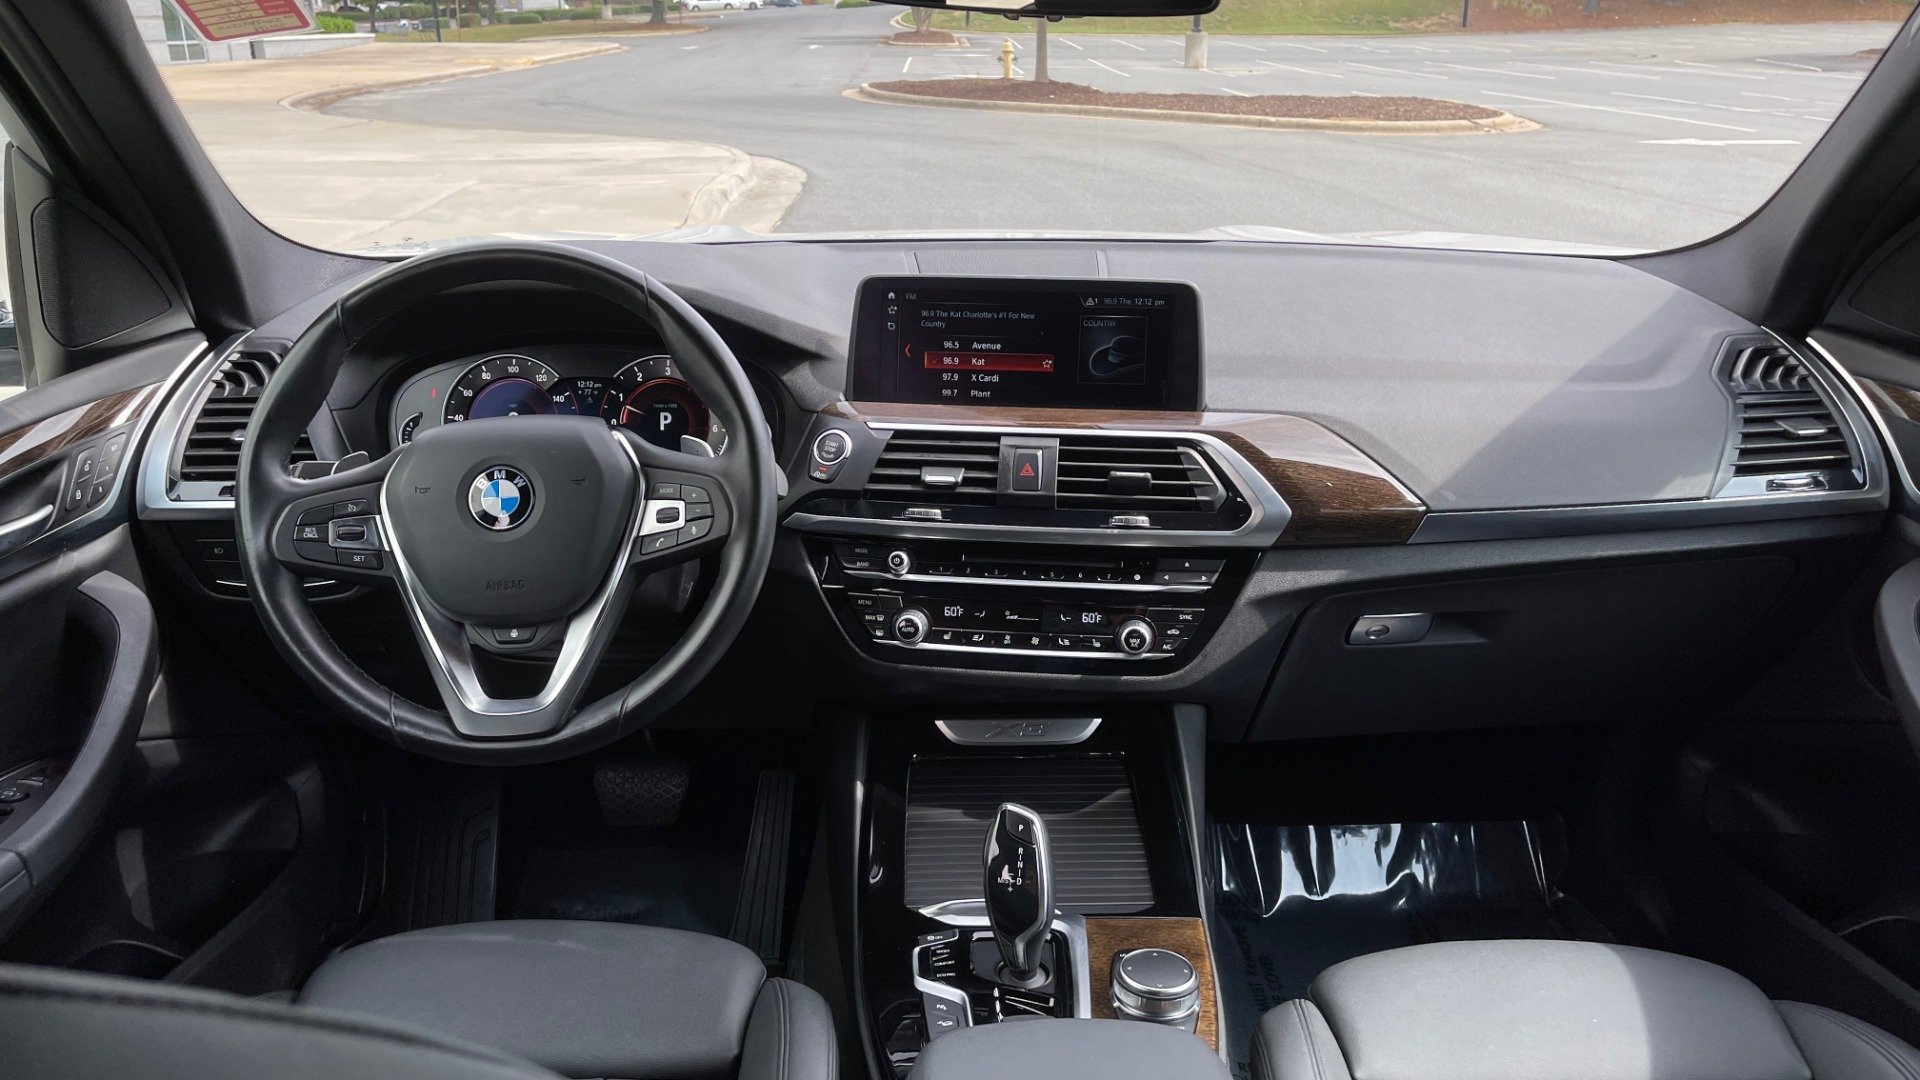 Used 2018 BMW X3 XDRIVE30I / NAV / PANO-ROOF / HTD STS / PARK DIST CNTRL / REARVIEW for sale $38,995 at Formula Imports in Charlotte NC 28227 54